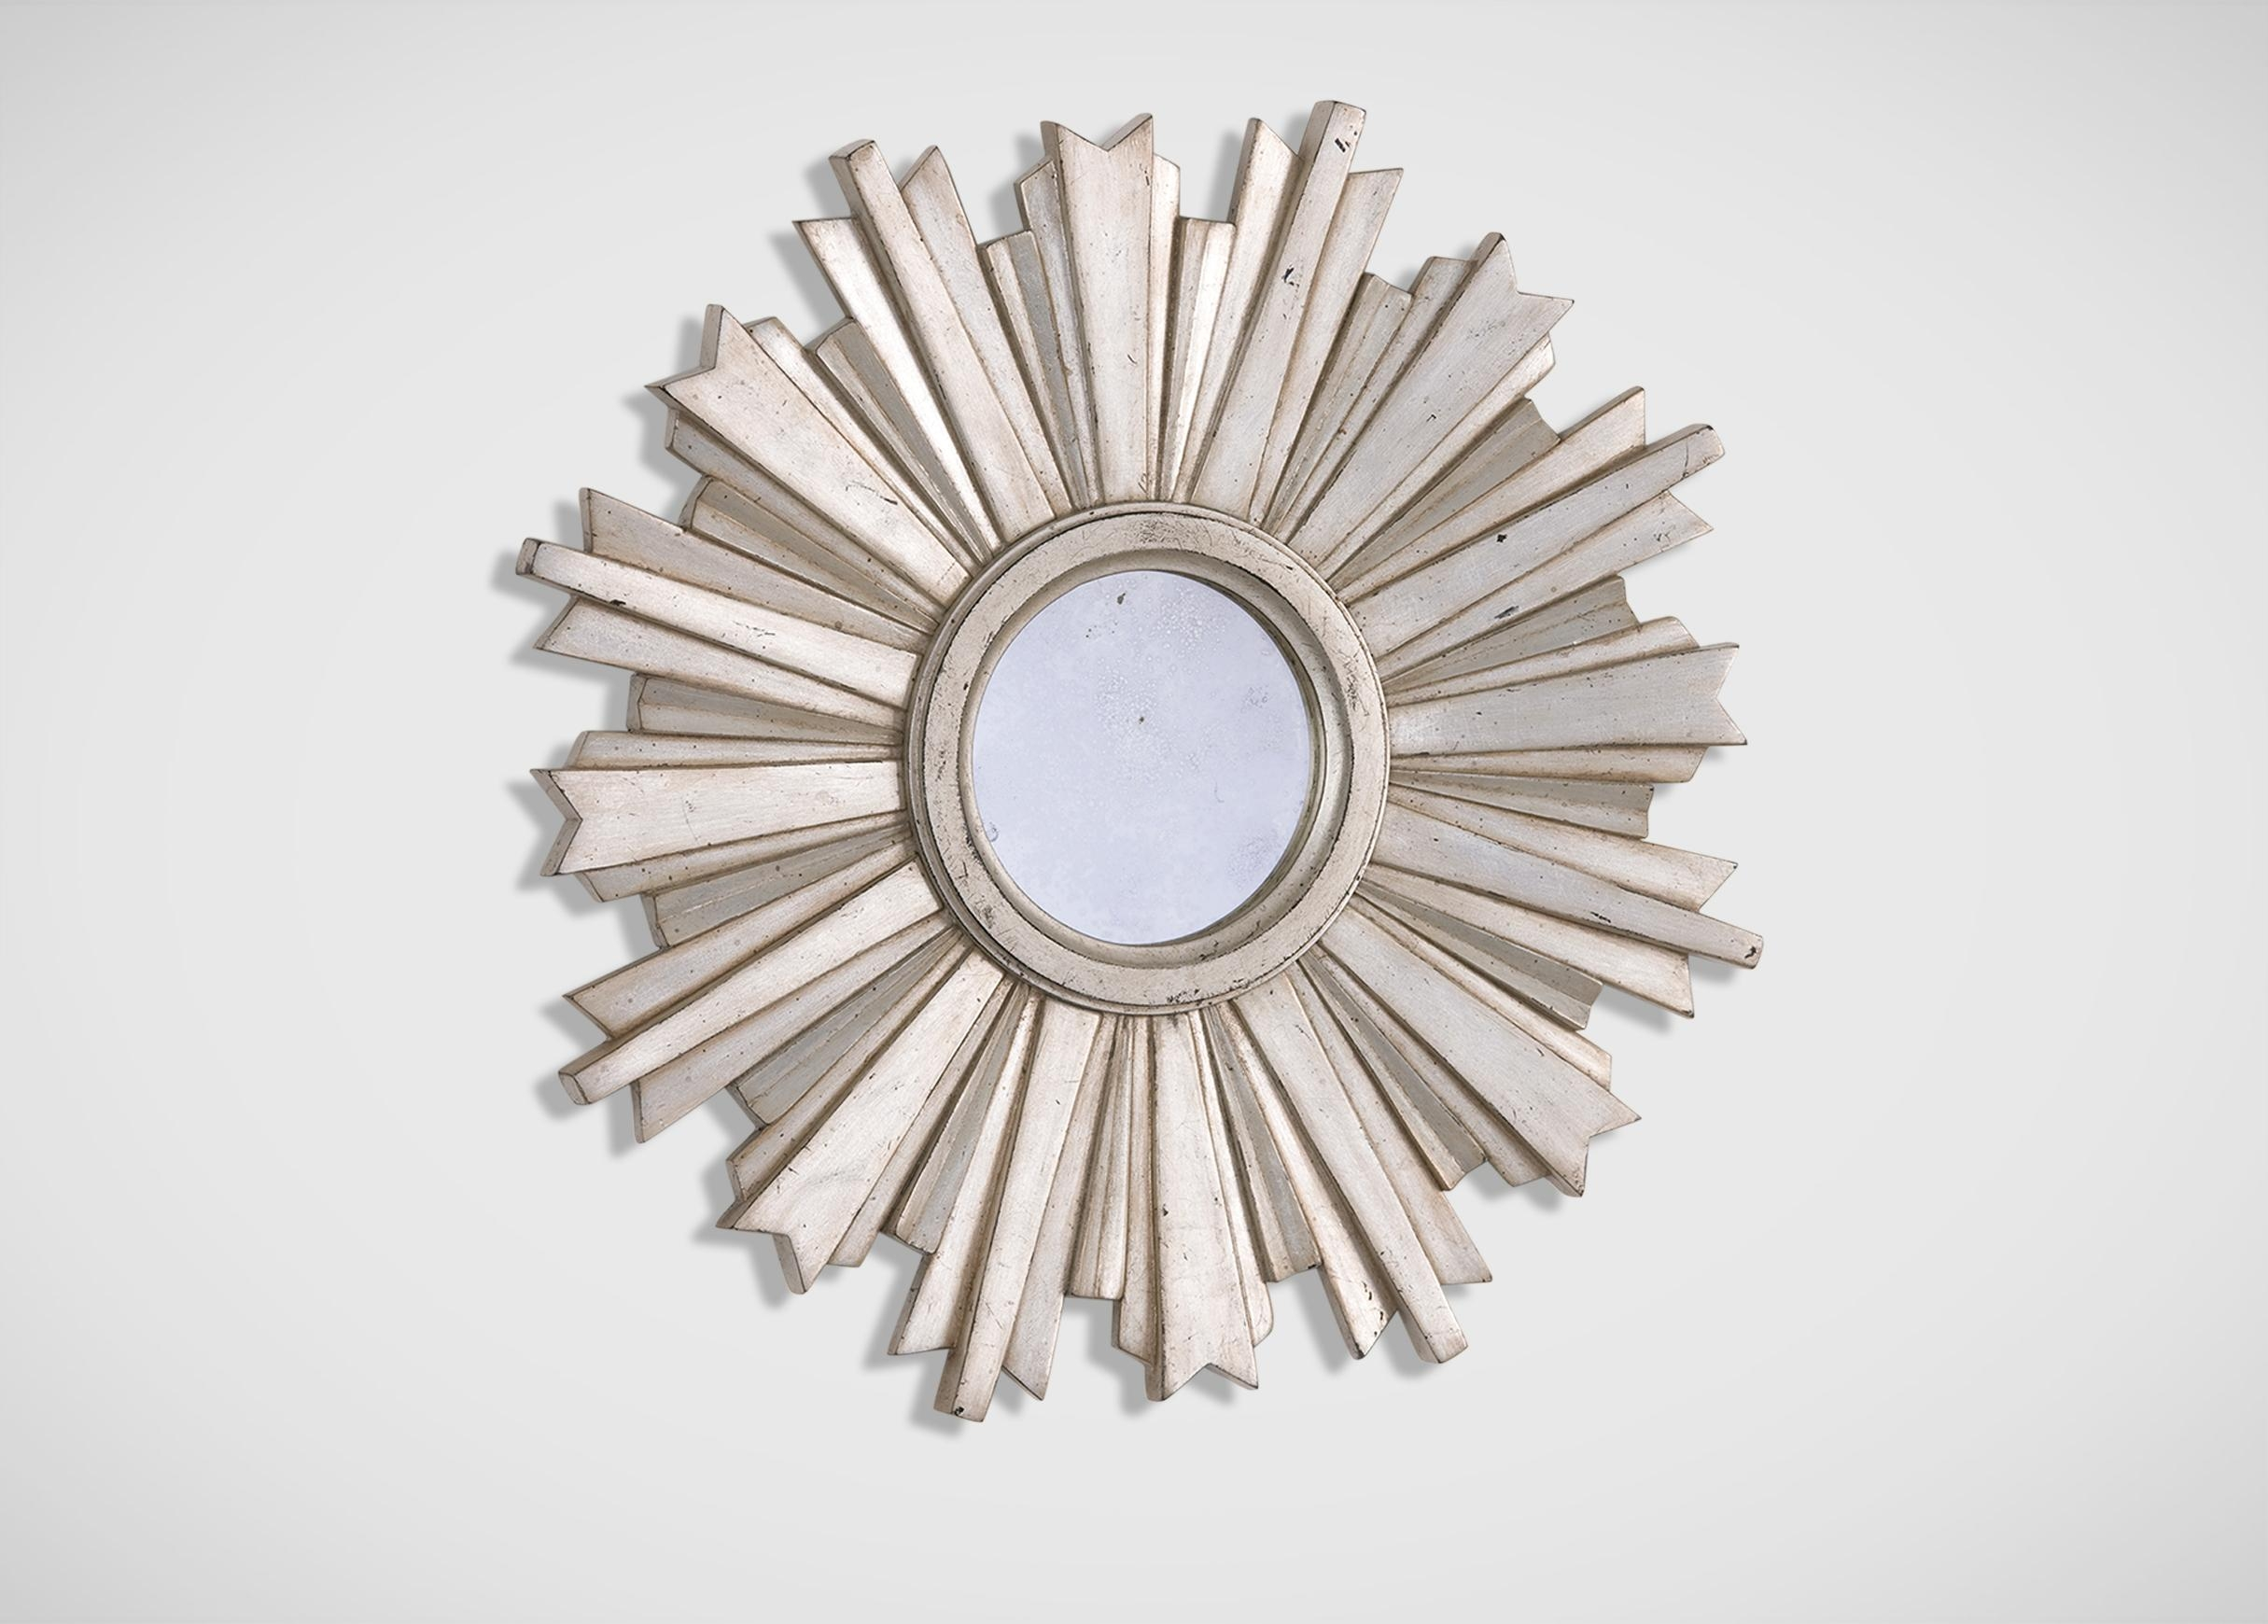 Mini Silver Starburst Mirror | Mirrors Inside Small Silver Mirrors (View 7 of 20)